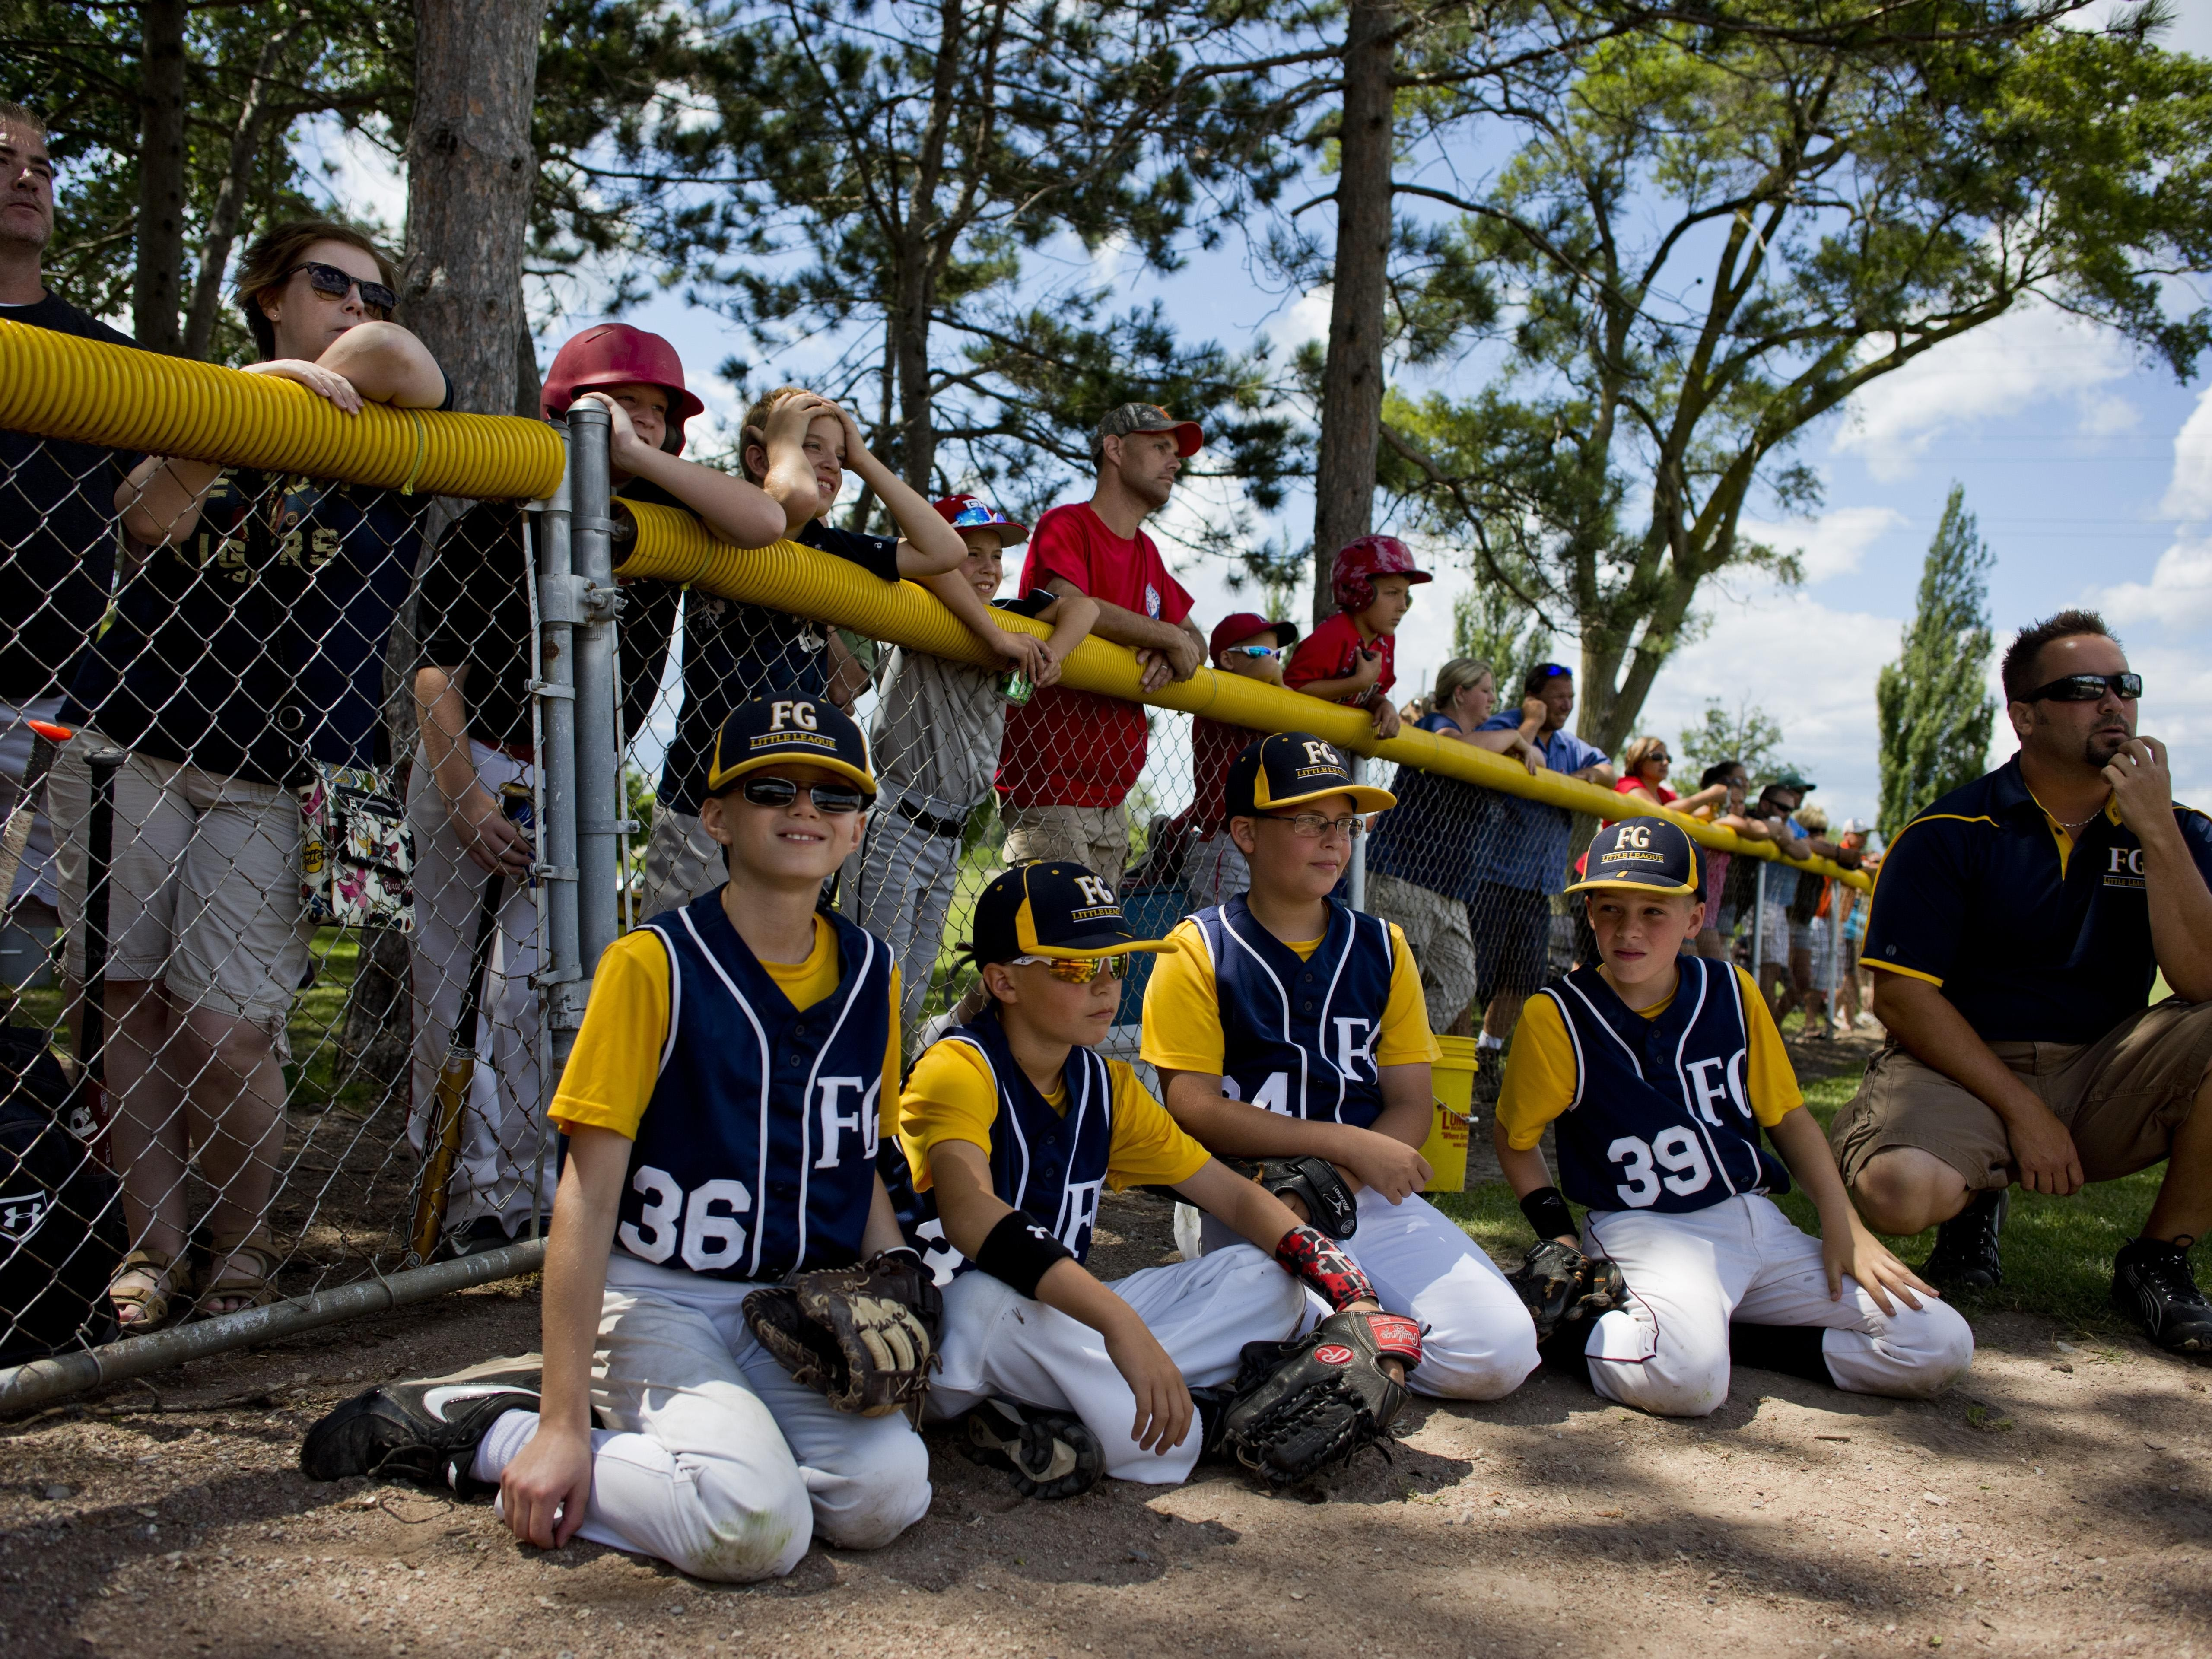 Members of the Fort Gratiot team and spectators watch from the sidelines during a Little League skills competition Saturday, August 1, 2015 at Marysville City Park.